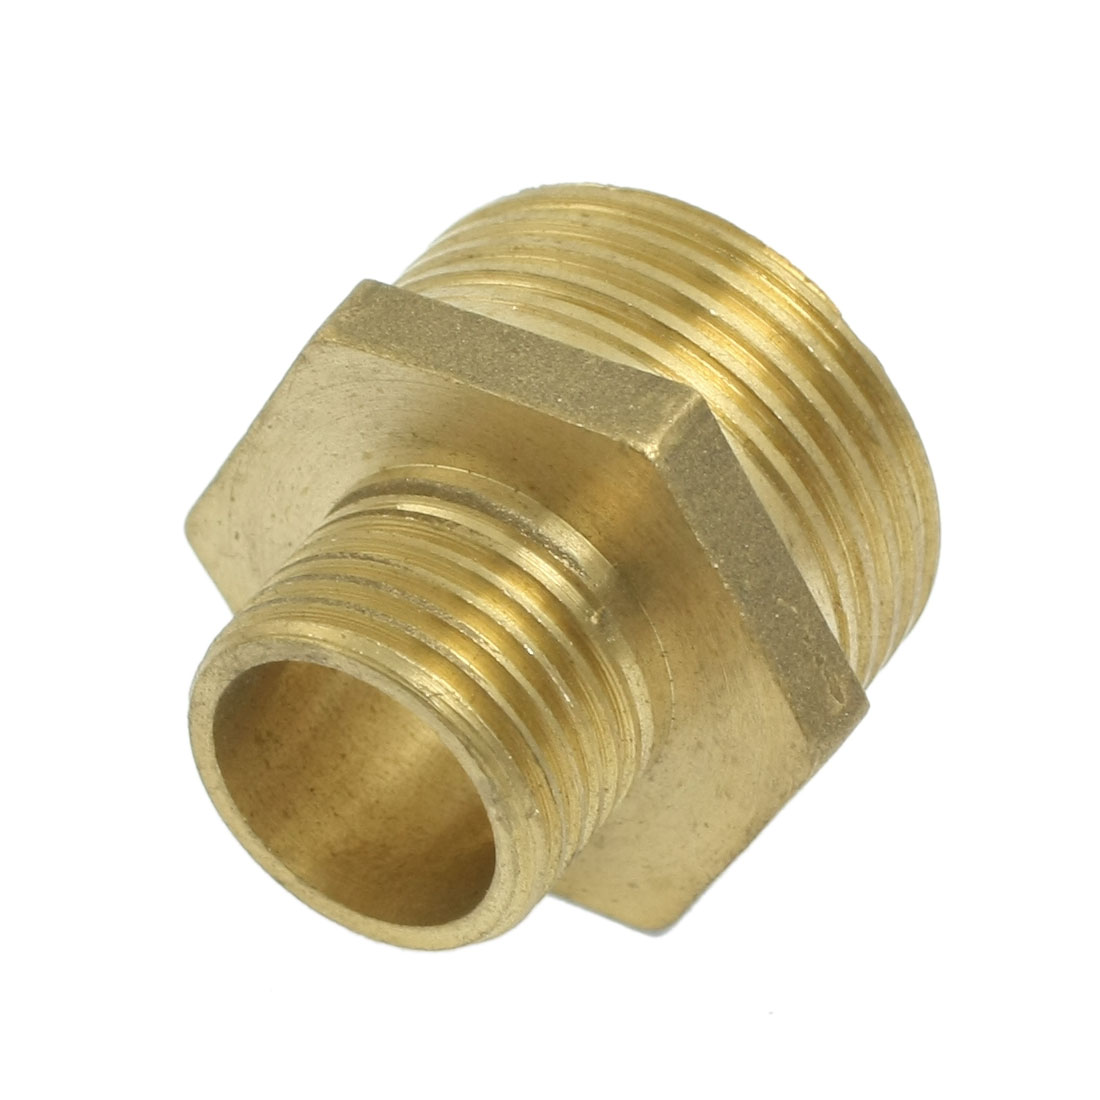 "Pneumatic Air Pipe 1"" to 1/2"" M/M Thread Brass Hex Reducing Nipple"